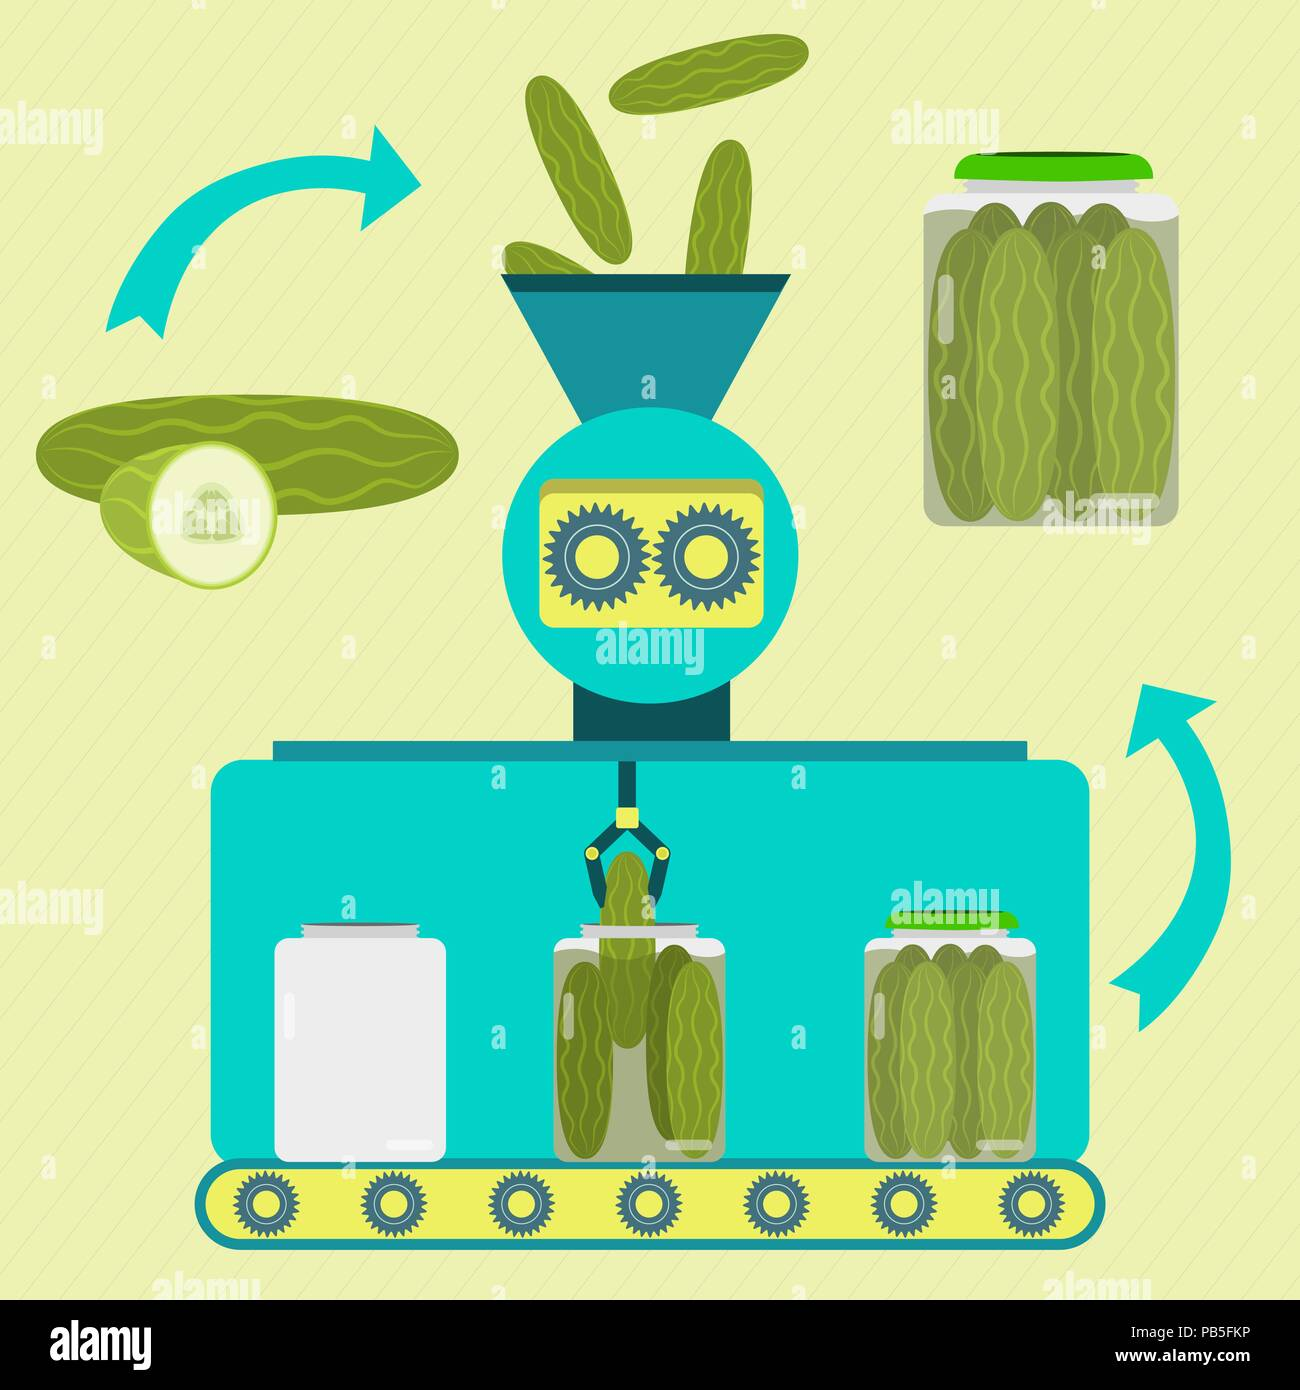 Pickles series production. Fresh cucumber being processed. Bottled pickled cucumber. - Stock Vector